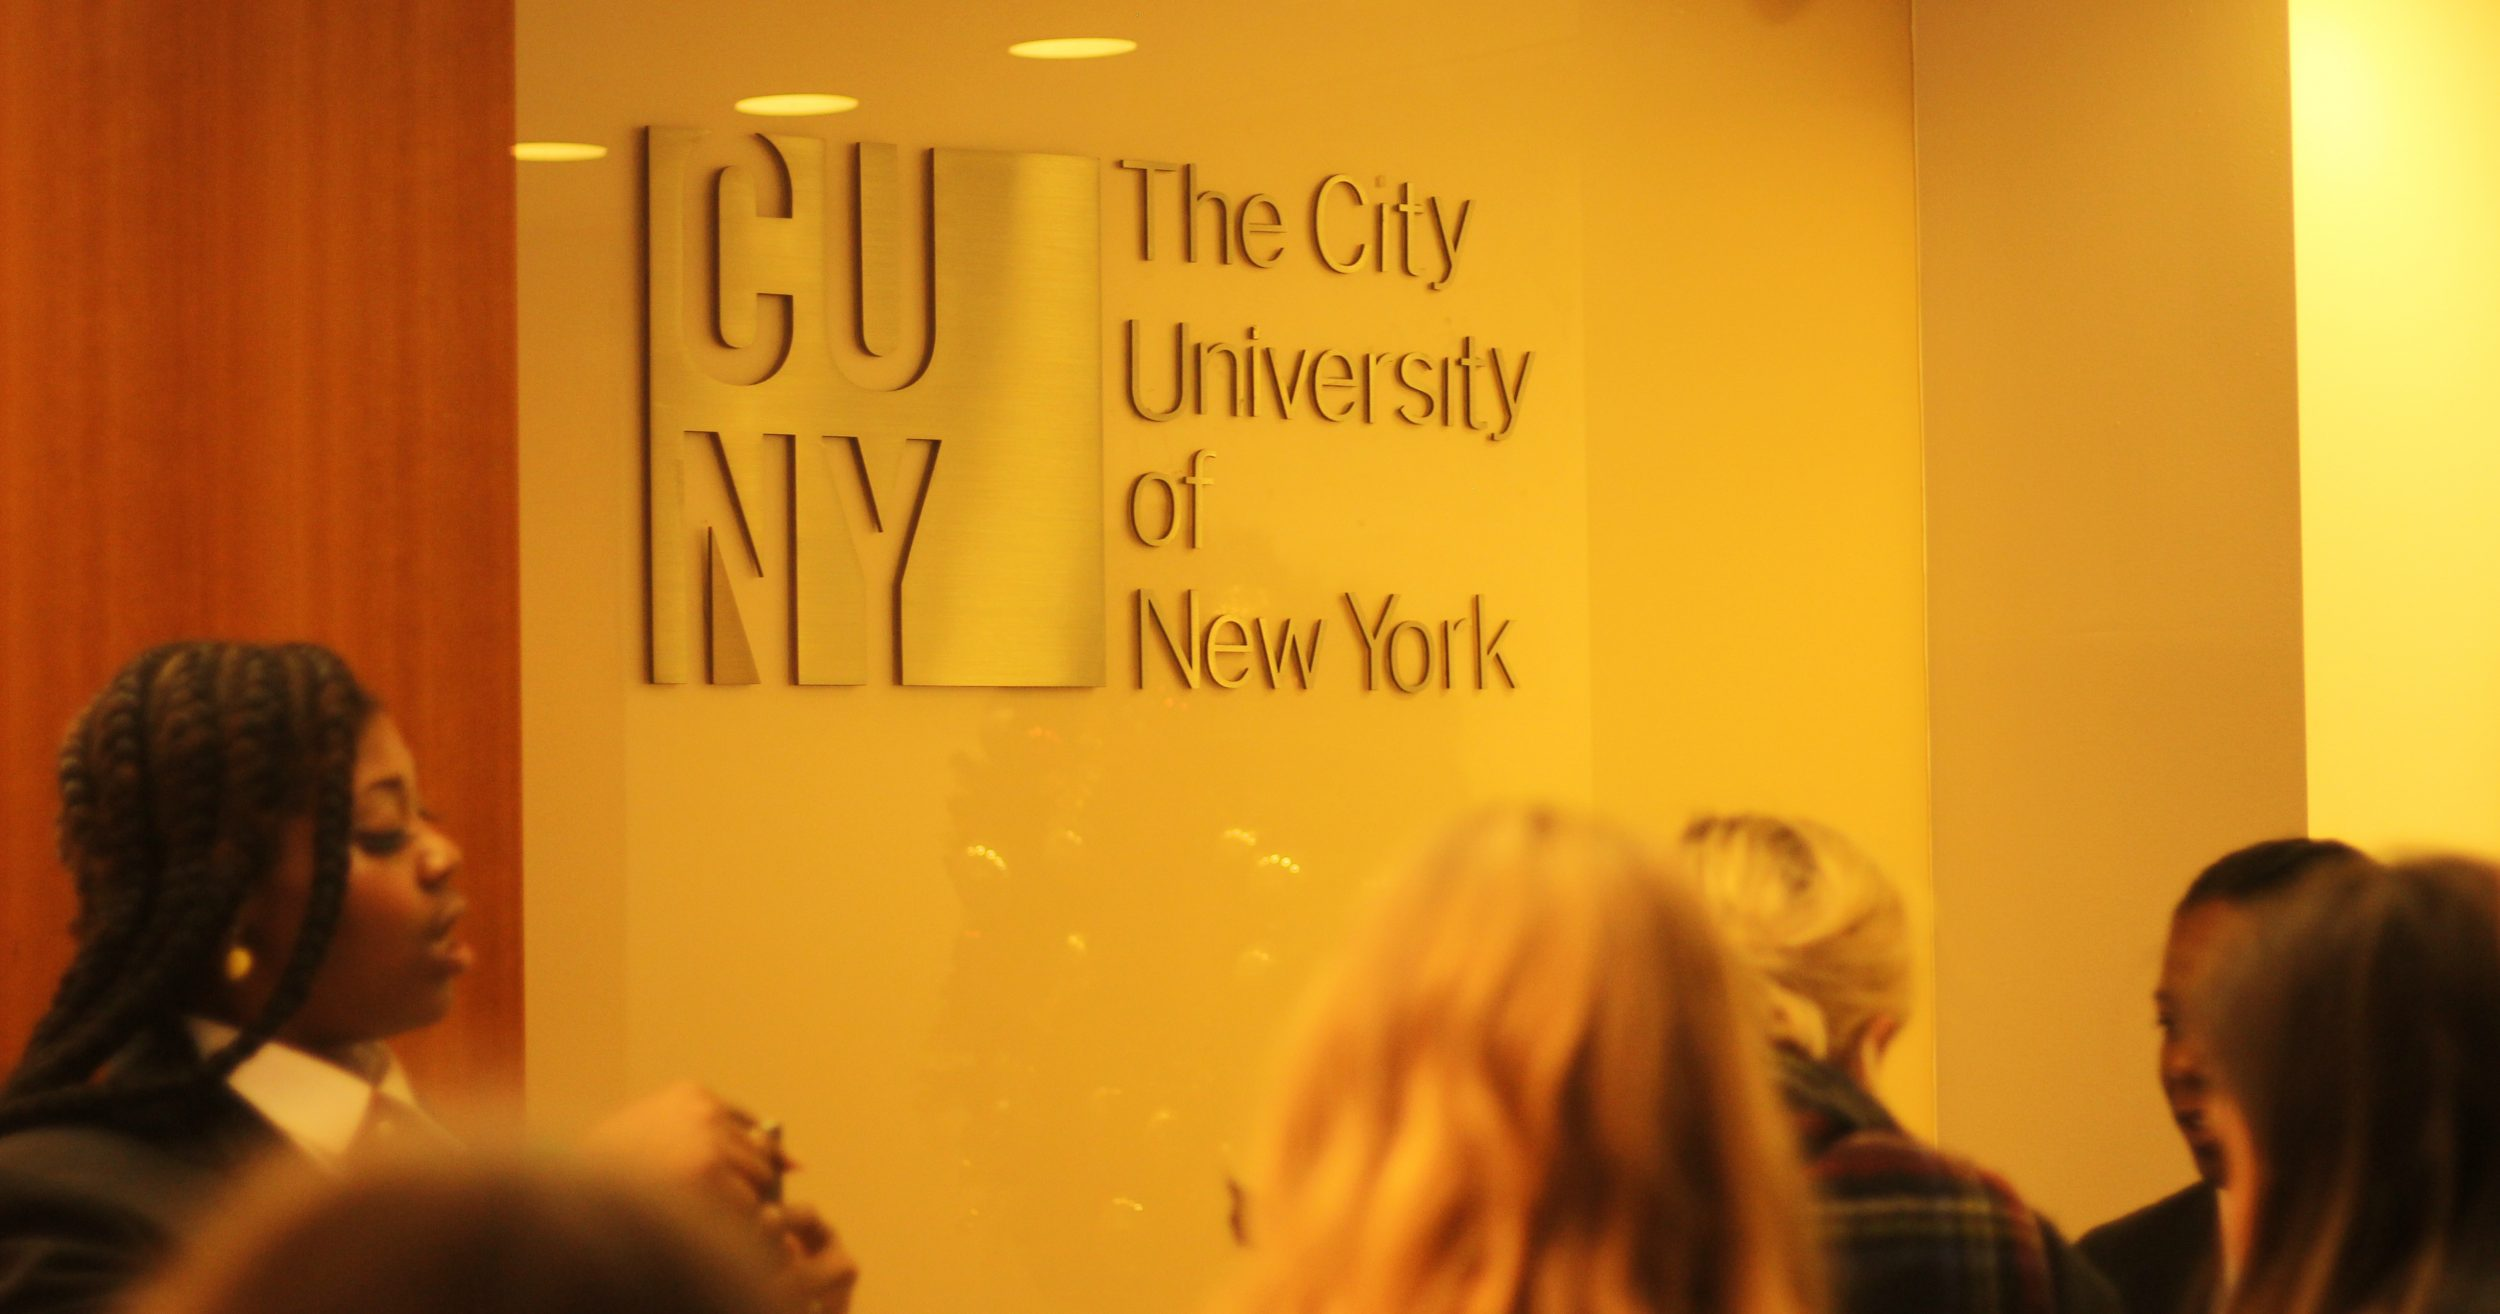 The entrance of the Graduate School of Journalism at The City University of New York (CUNY).